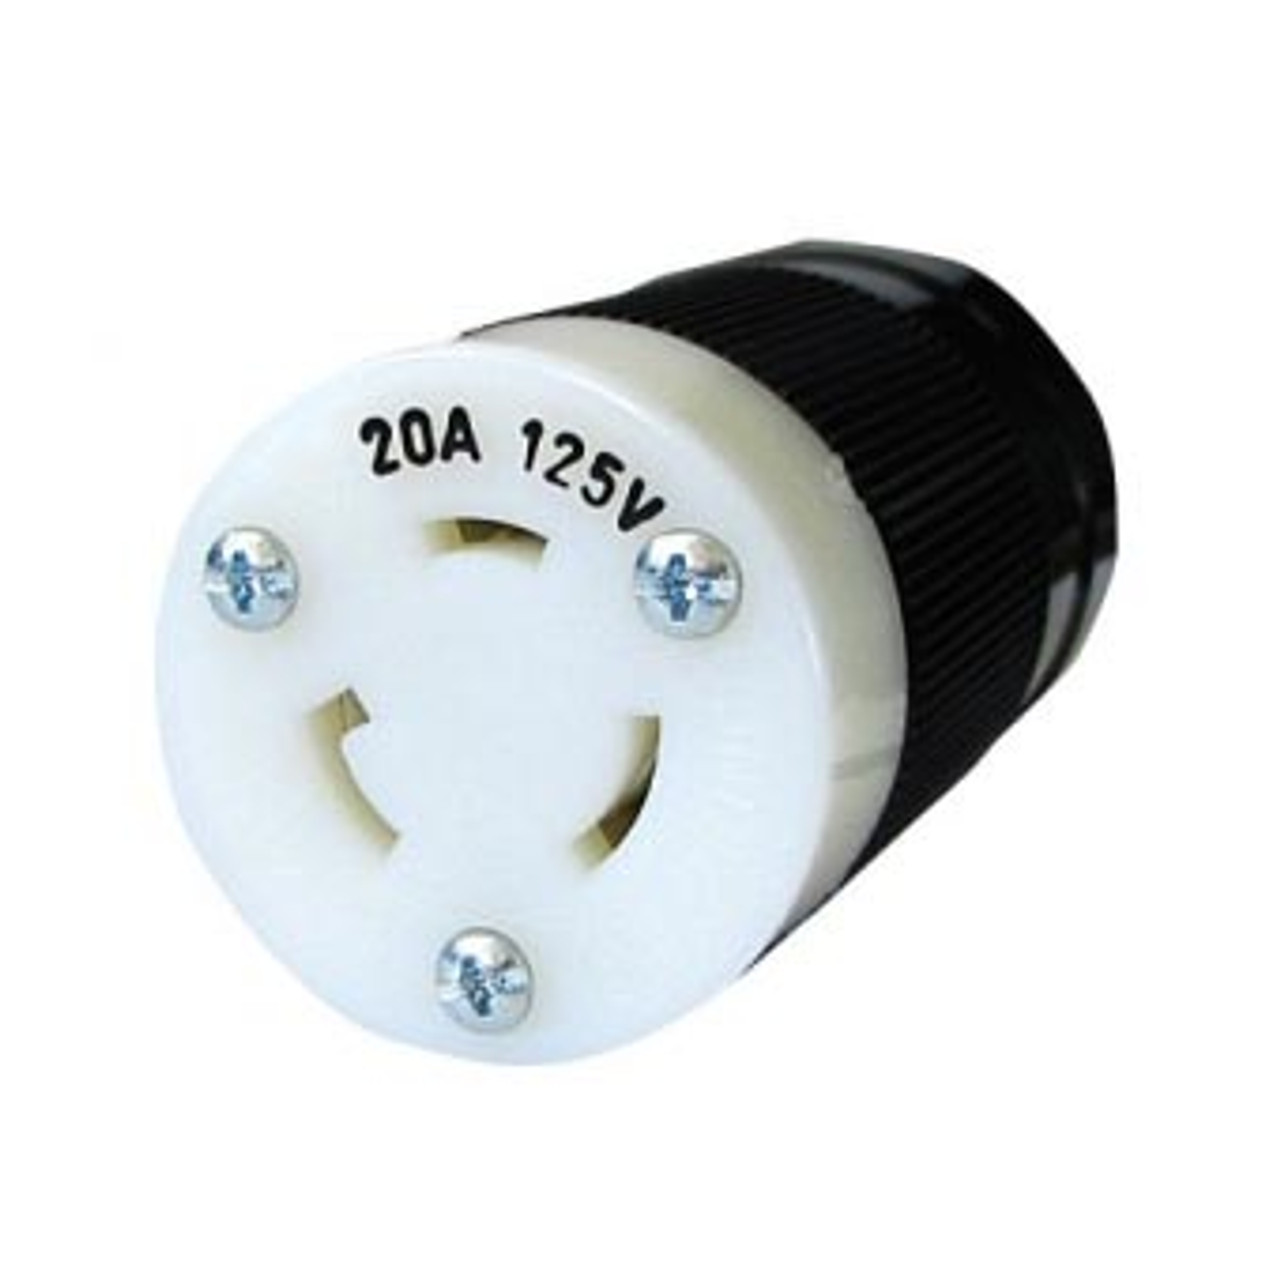 L5-20R 20A 125V FEM FEMALE END